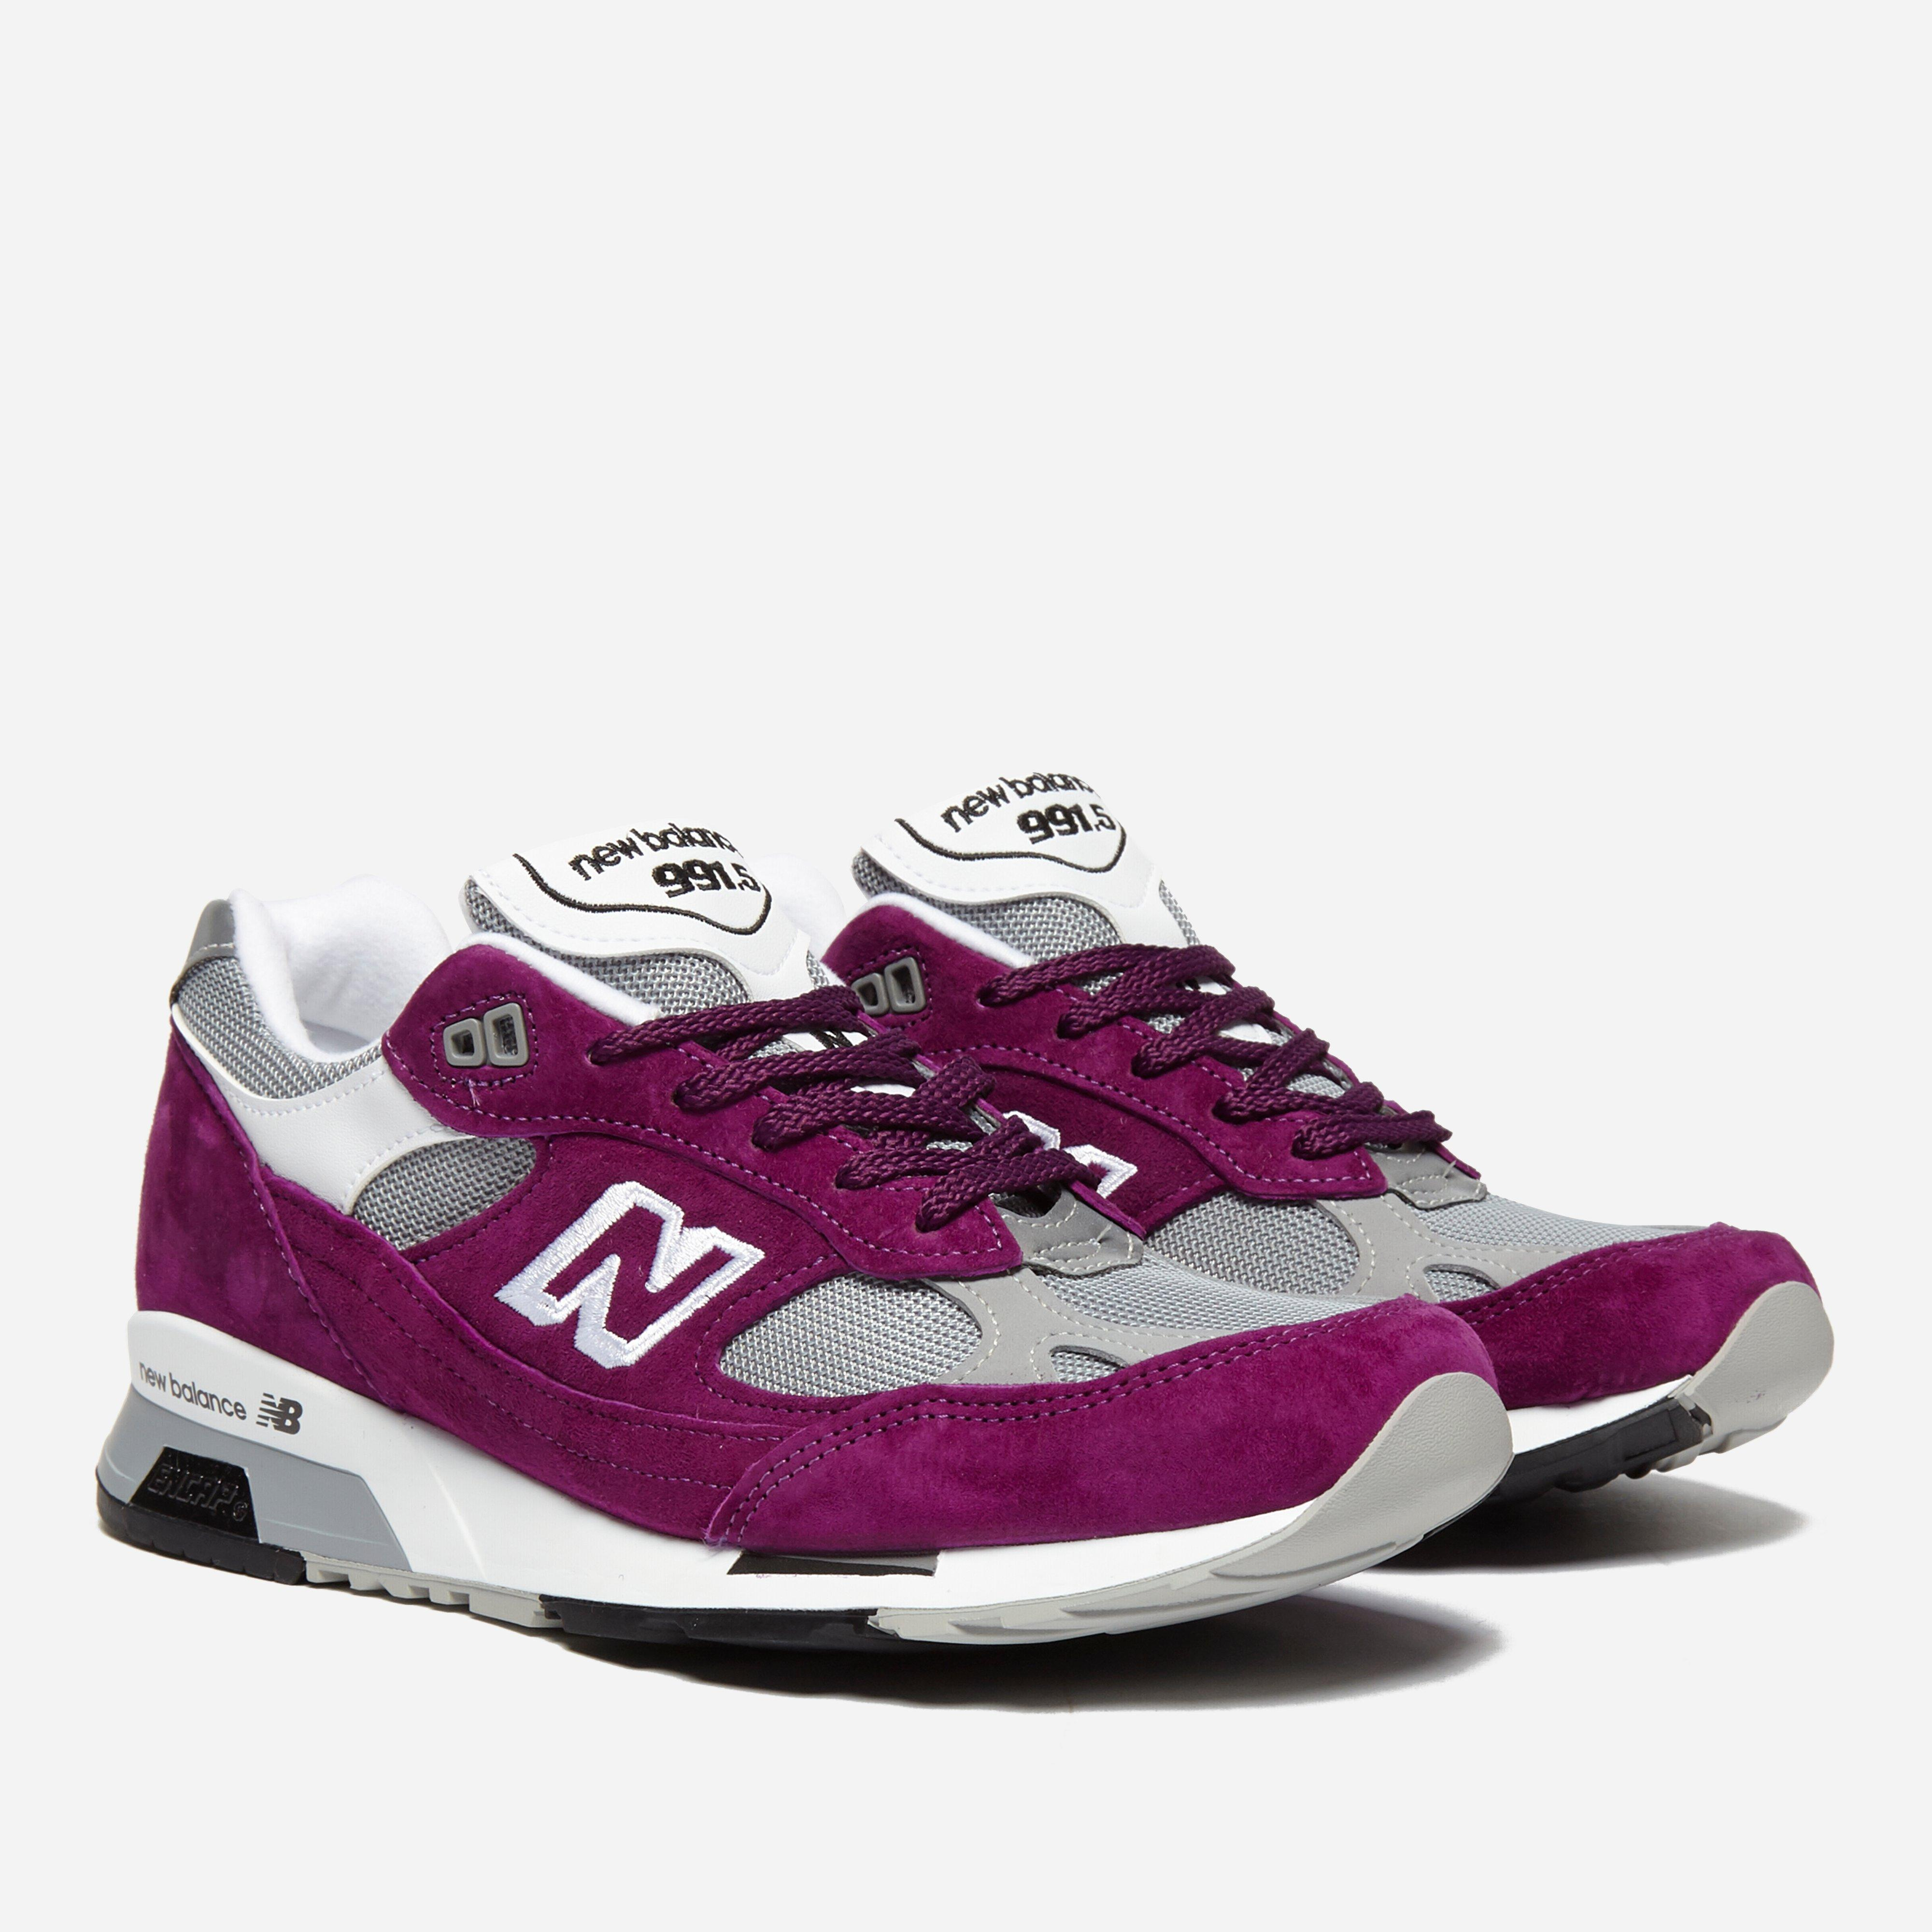 New Balance M 991.5 CC '991 / 1500' Made in England